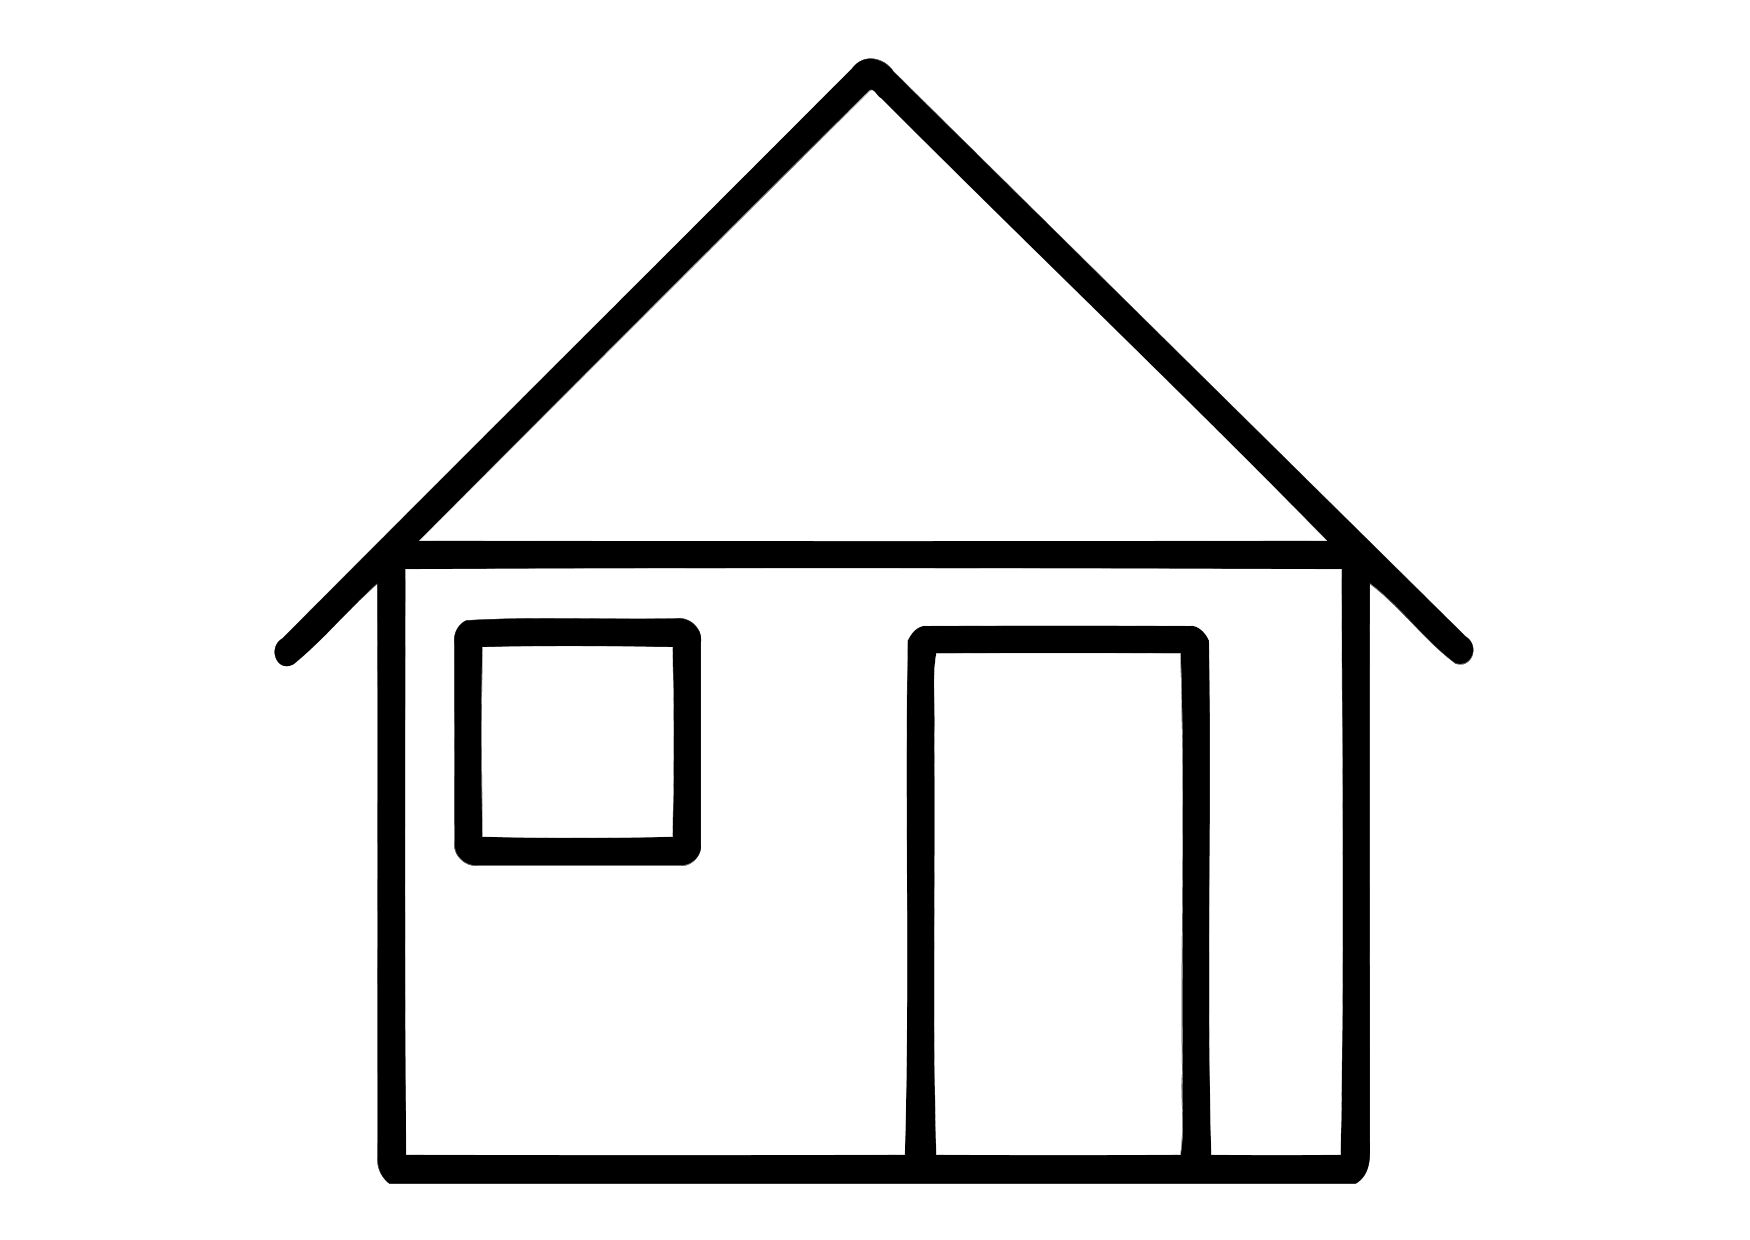 coloring pages house house coloring pages getcoloringpagescom pages coloring house